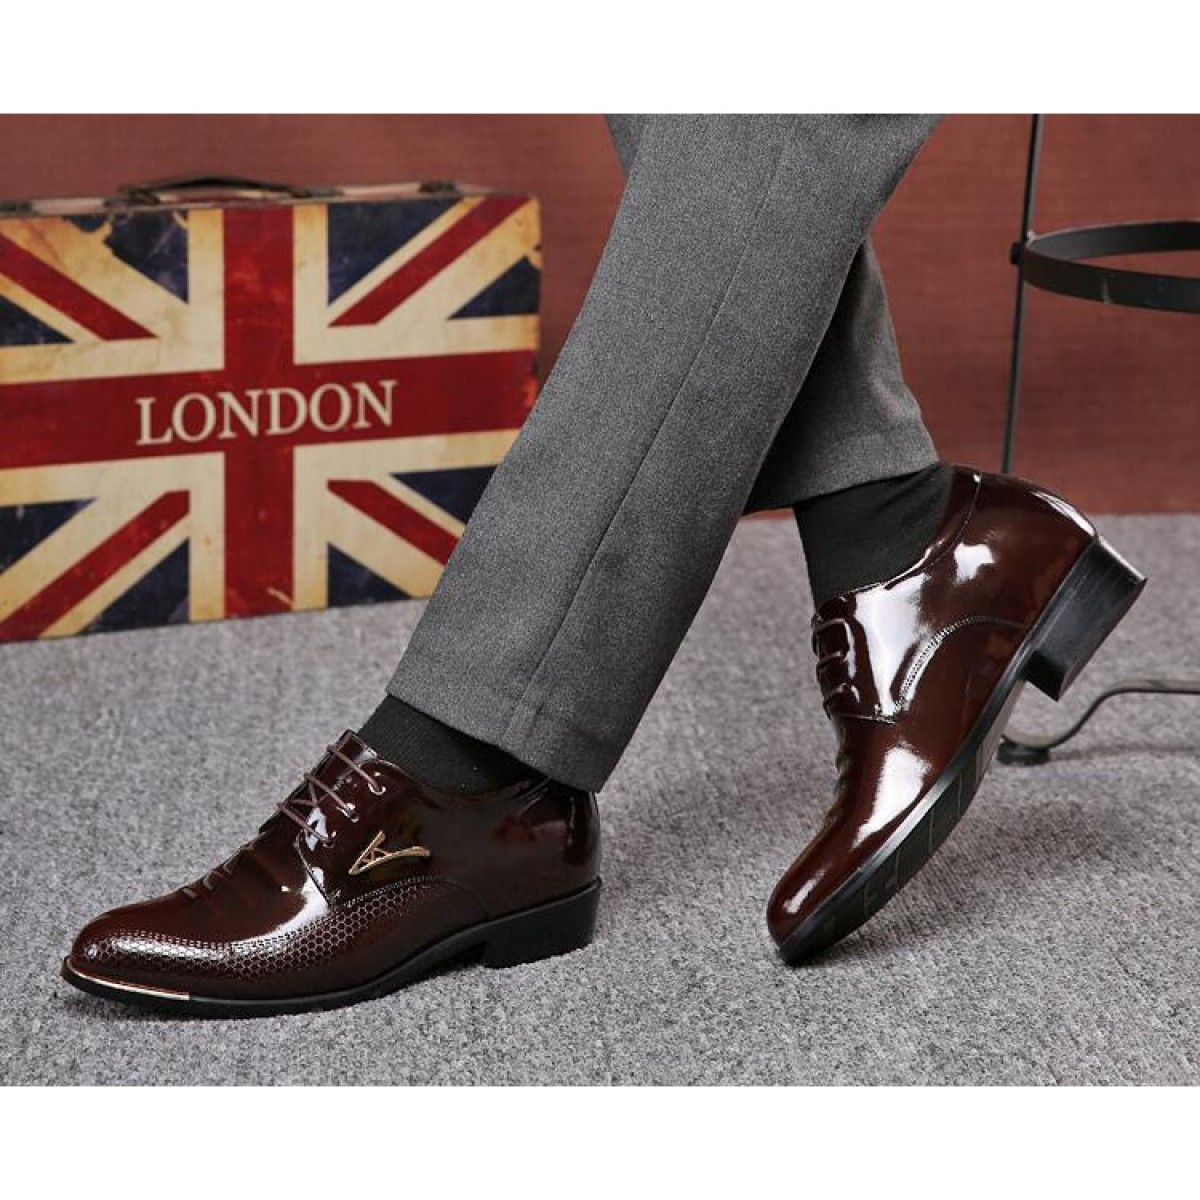 British Sharp Tall Wedding Shoes 8cm 3 2 Inch Dark Brown Lace Up Groom Tuxedo